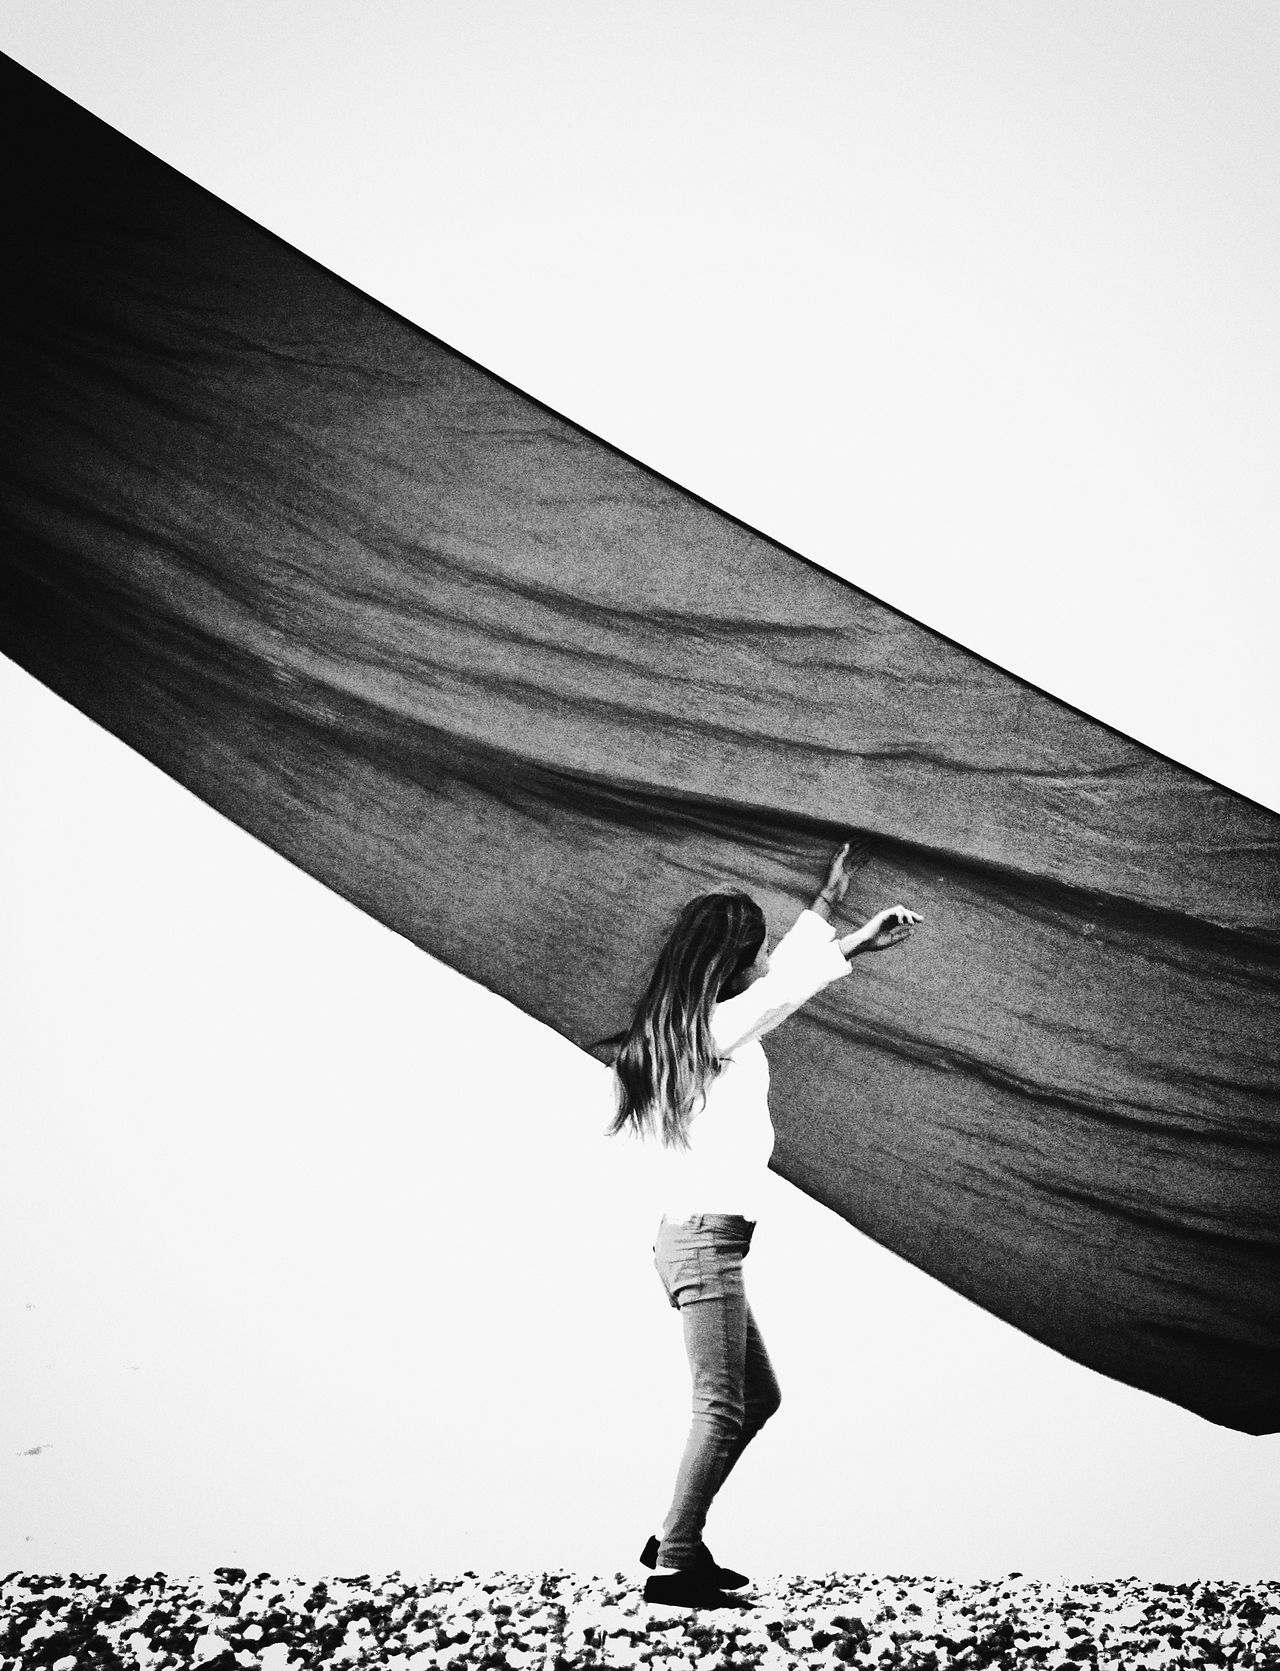 Artistic Atlantic Coast Black And White Classic Clear Sky Contrast Creative Dynamic Dynamic Monochrome Expressionism Fantasy Fine Art Photography Flight France Kite Ocean One Person Outdoor Wind